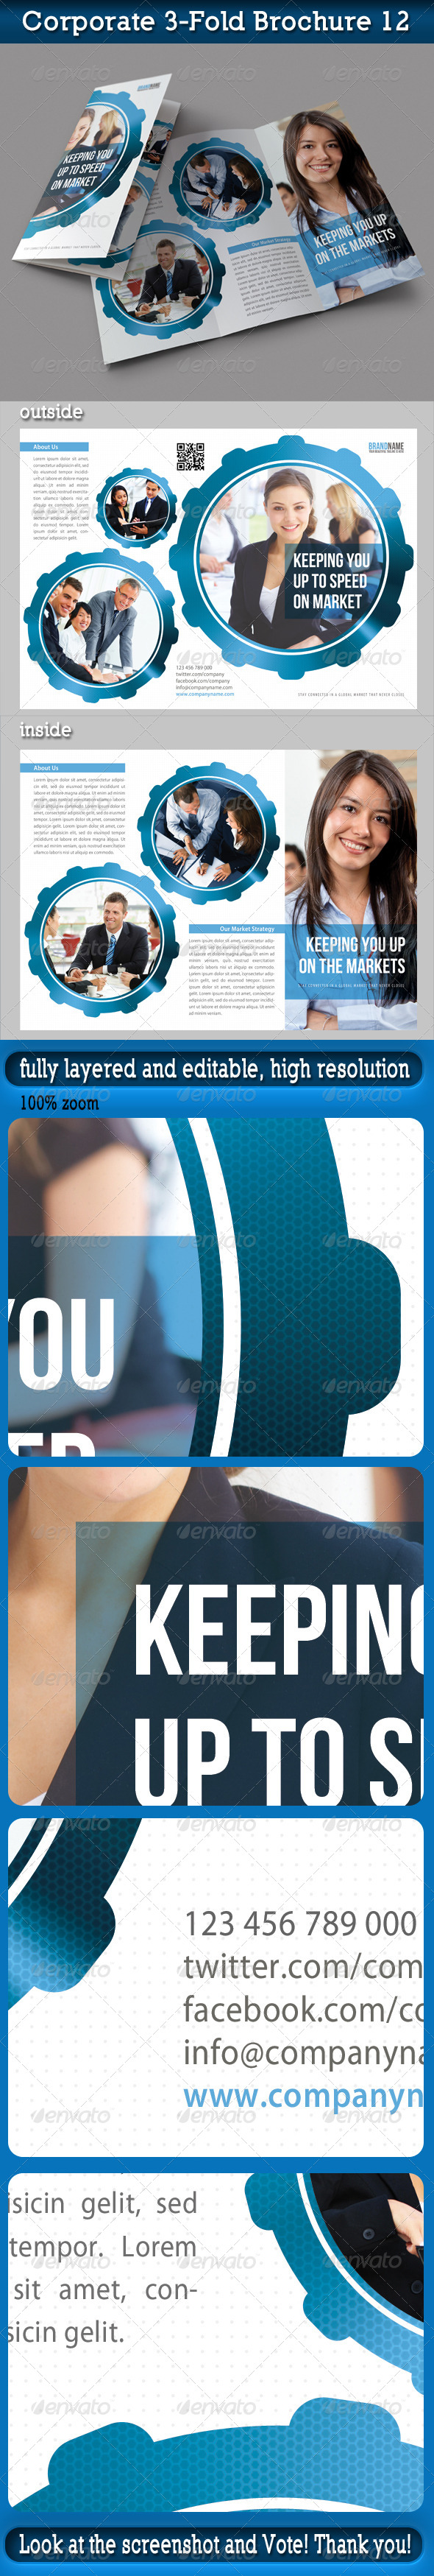 GraphicRiver Corporate 3-Fold Brochure 12 5531318